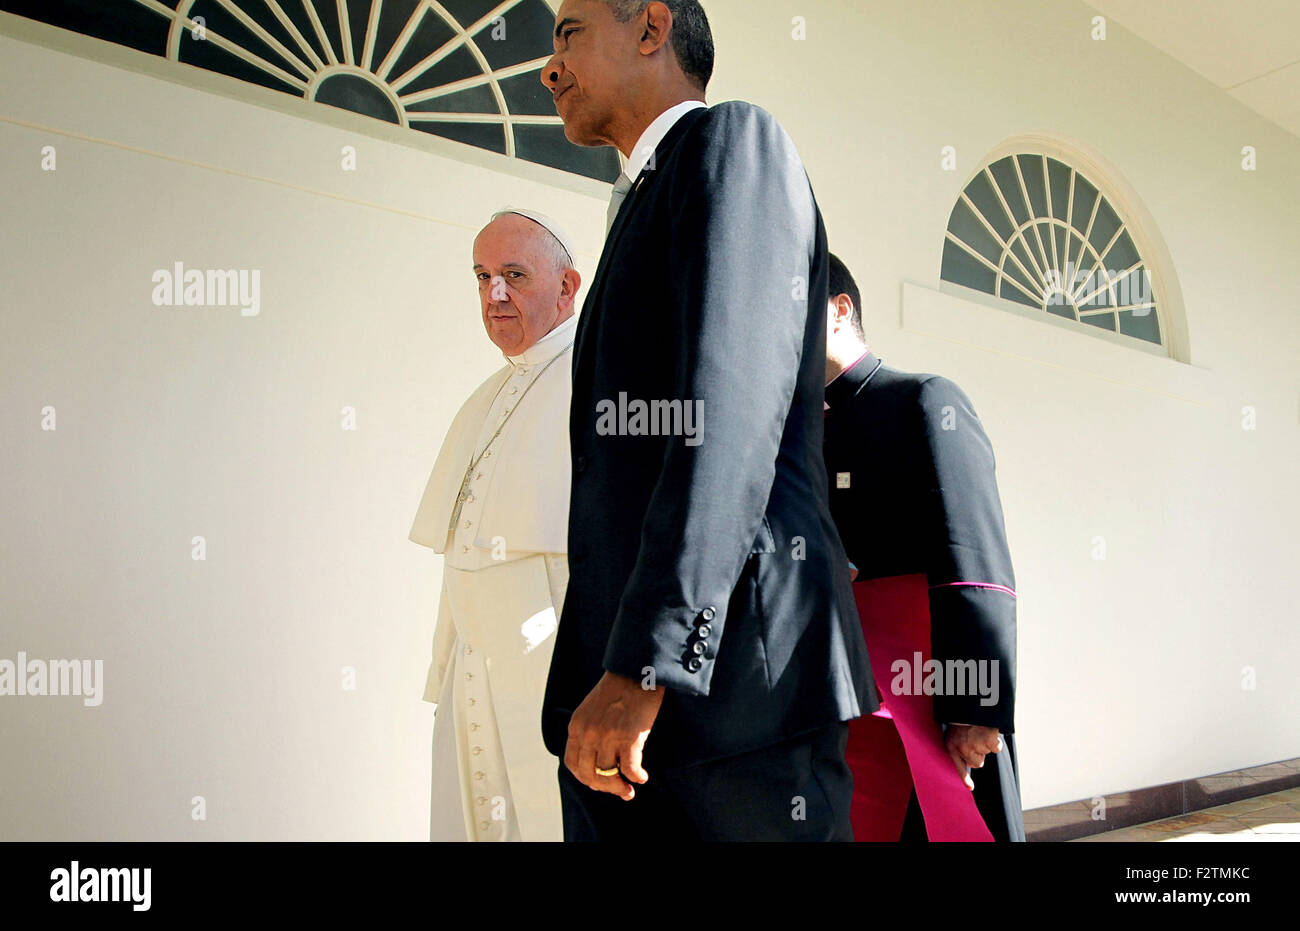 Washington, DC. 23rd Sep, 2015. U.S. President Barack Obama (2nd L) and Pope Francis (L) walk through the colonnade Stock Photo